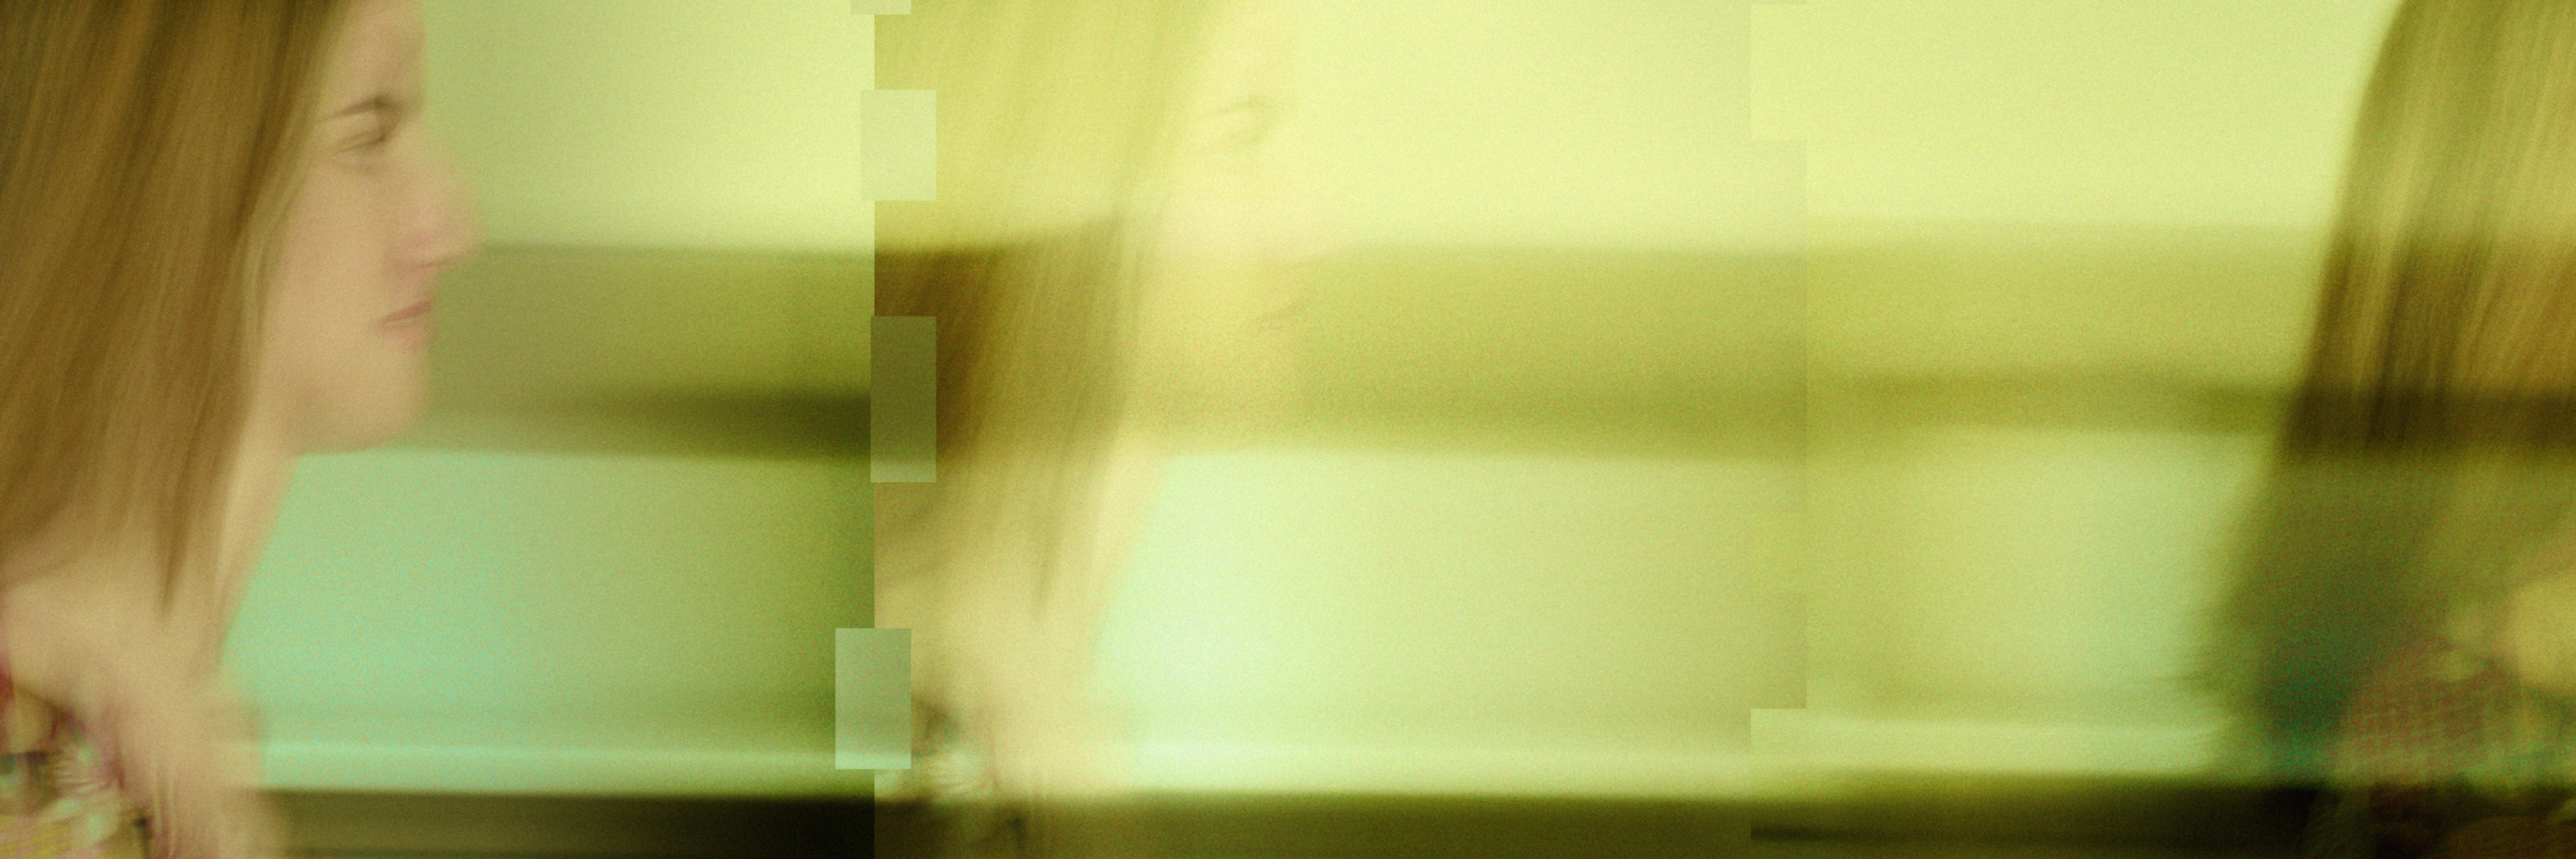 digital composite of yougn woman blurred walking through office